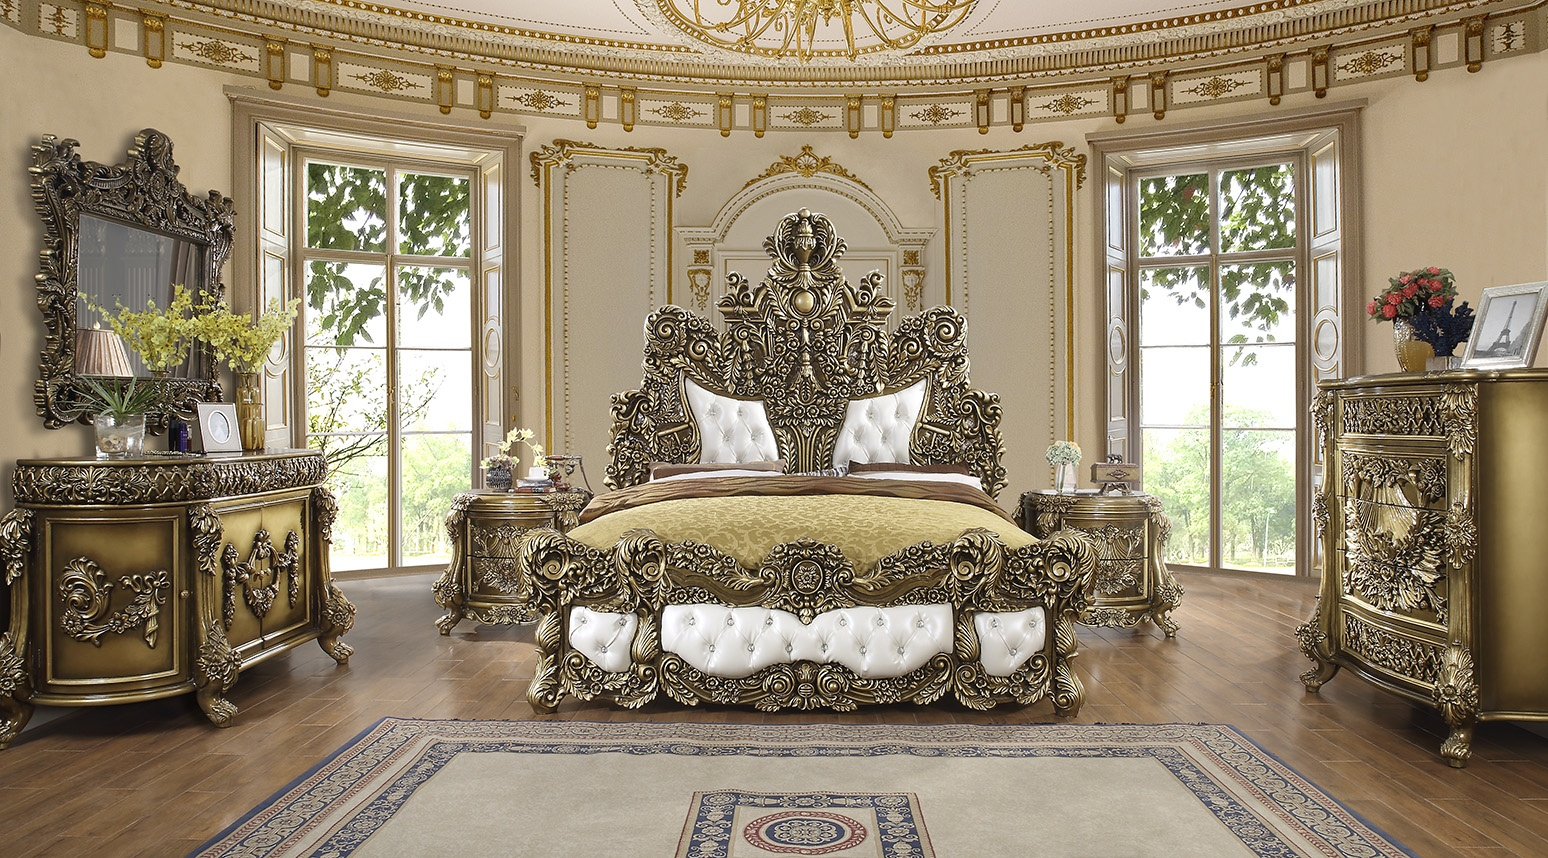 French Provincial K-1802 Bedroom